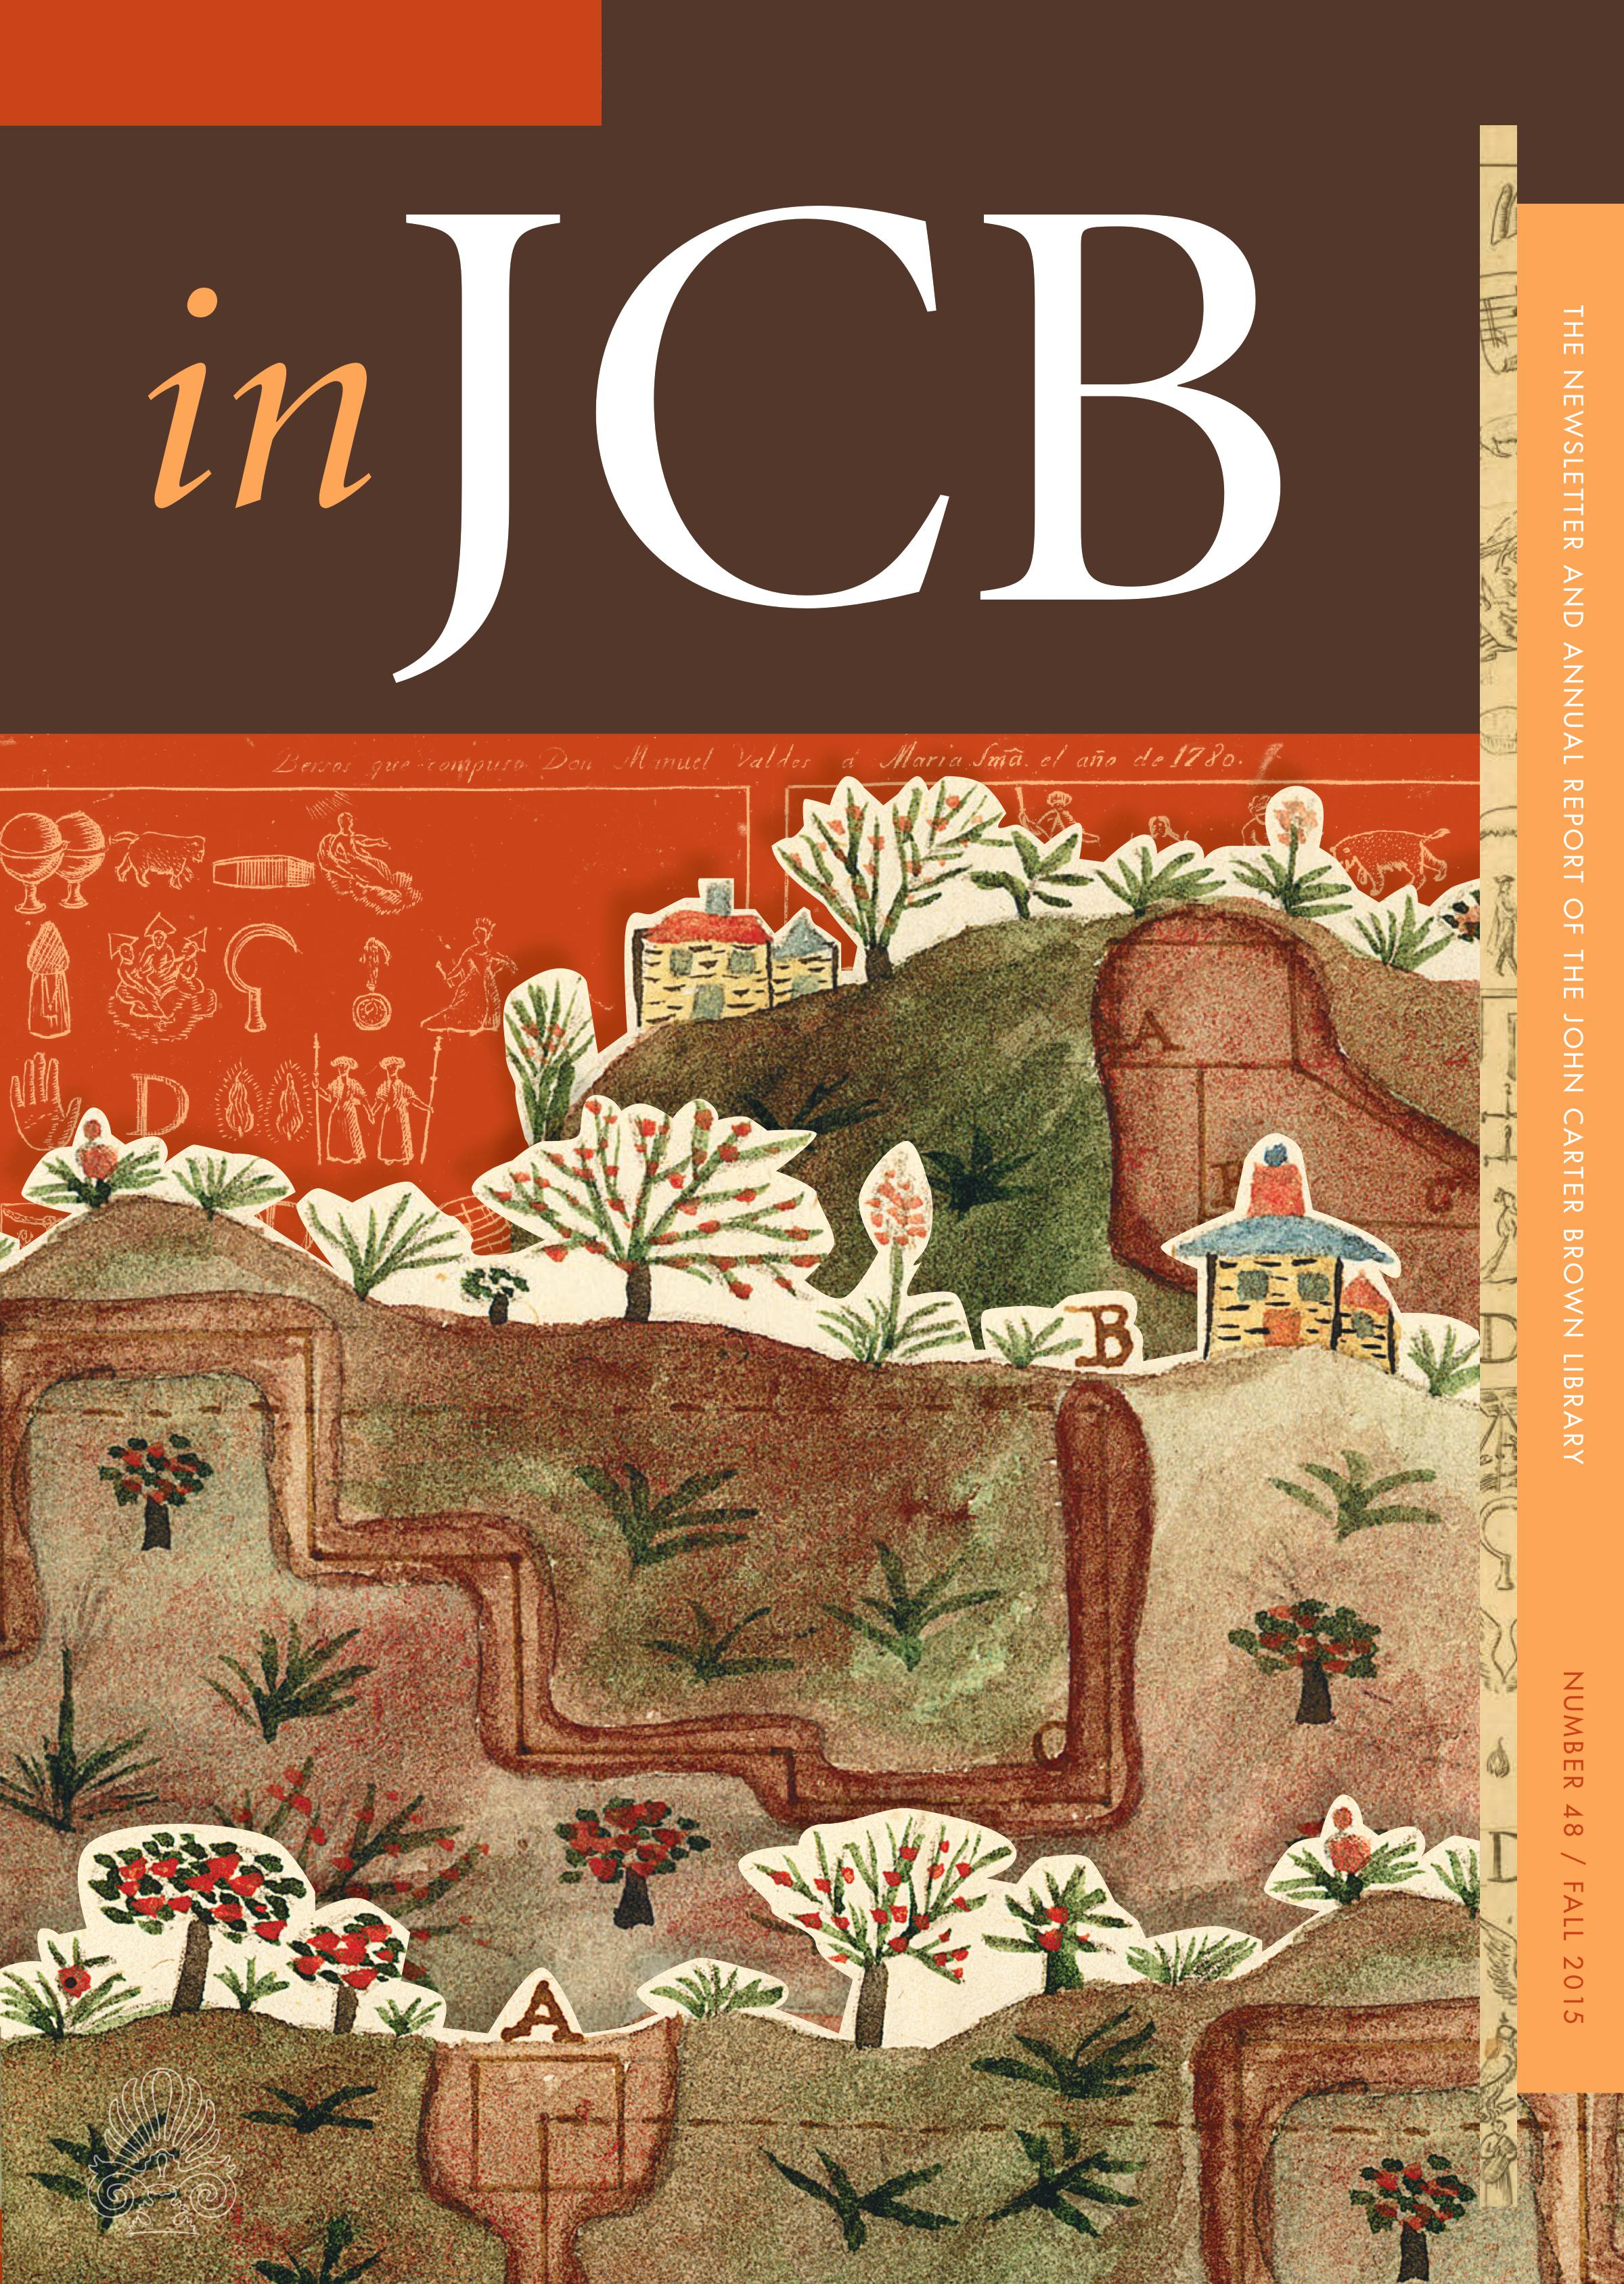 colorful cover of the In JCB newsletter, showing a collage of landscape images